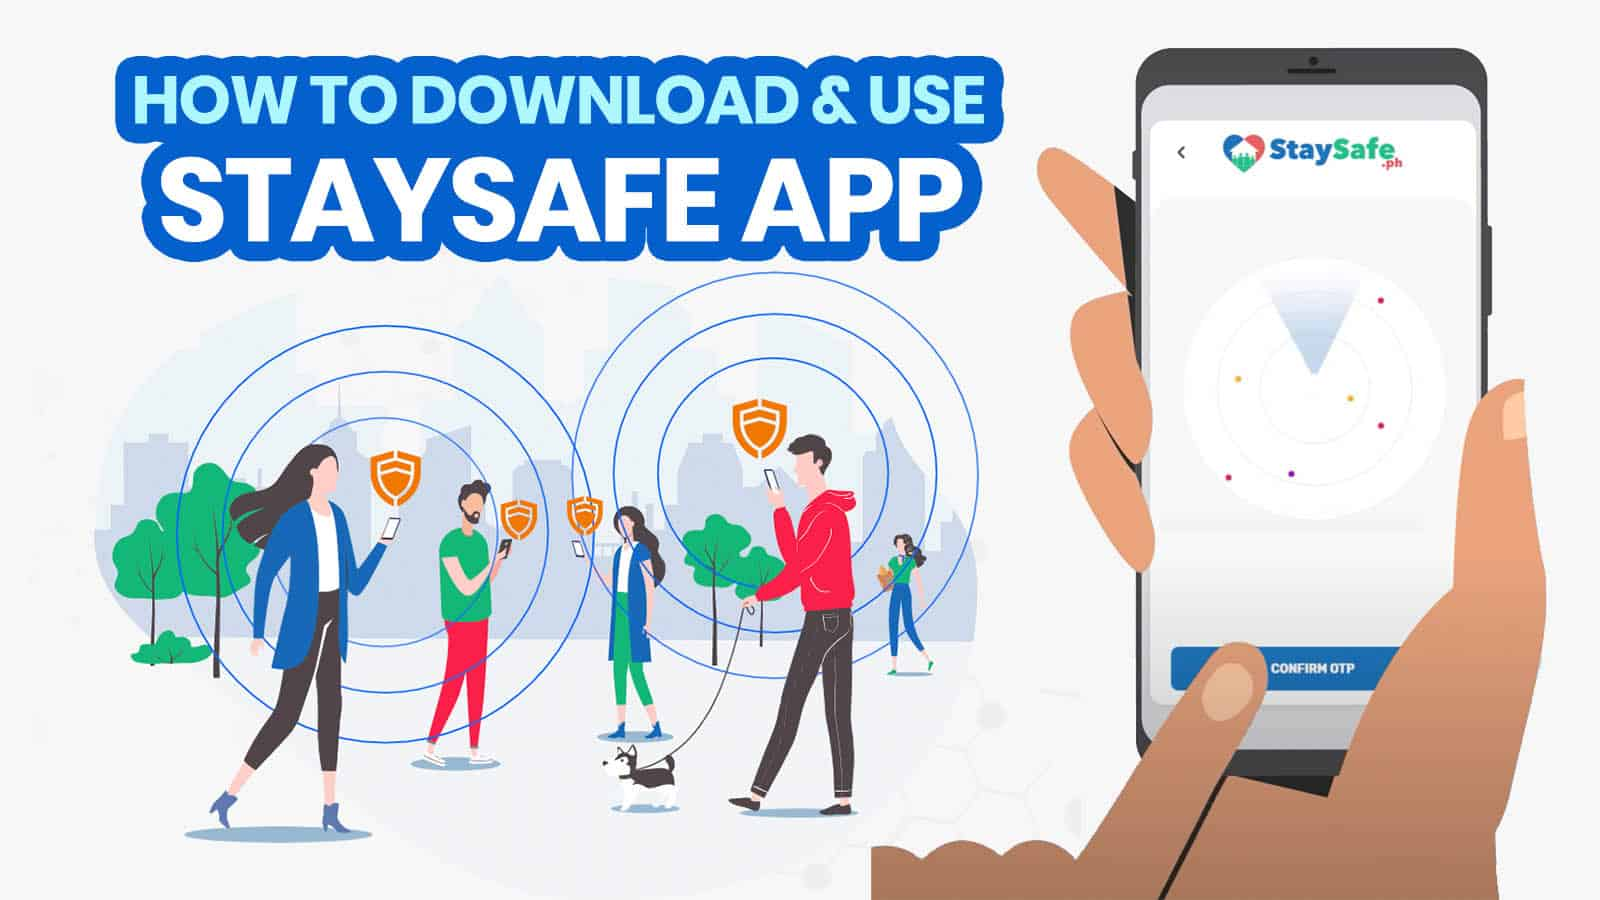 STAYSAFE APP: Where to Download, How to Register & Use